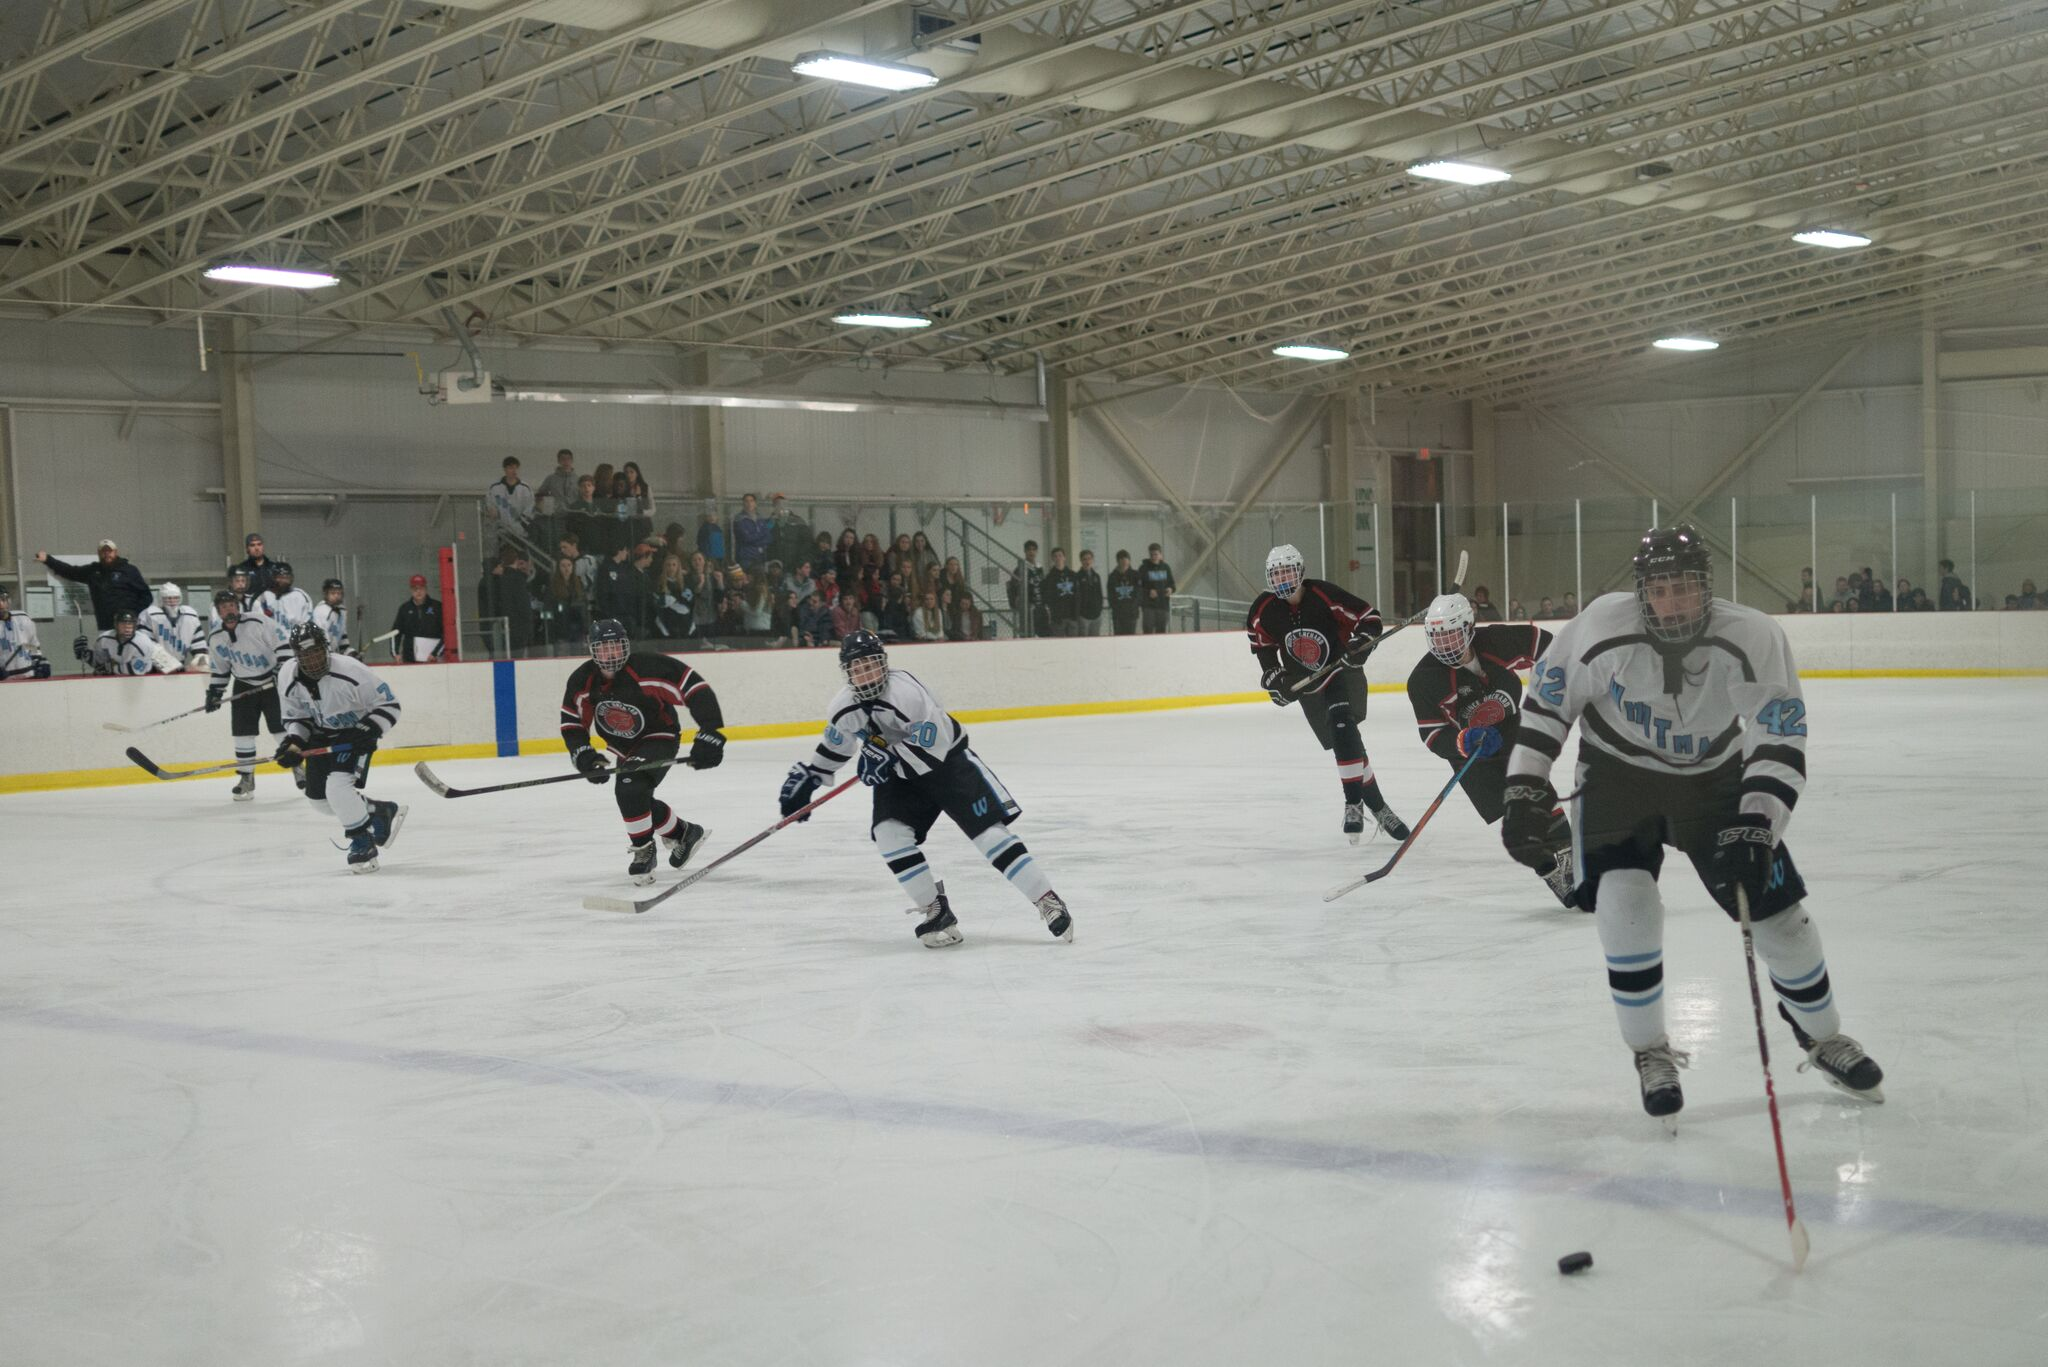 Defenseman Mark Meinecke glides the puck into the offensive zone in the team's victory over QO. Photo by Tomas Castro.